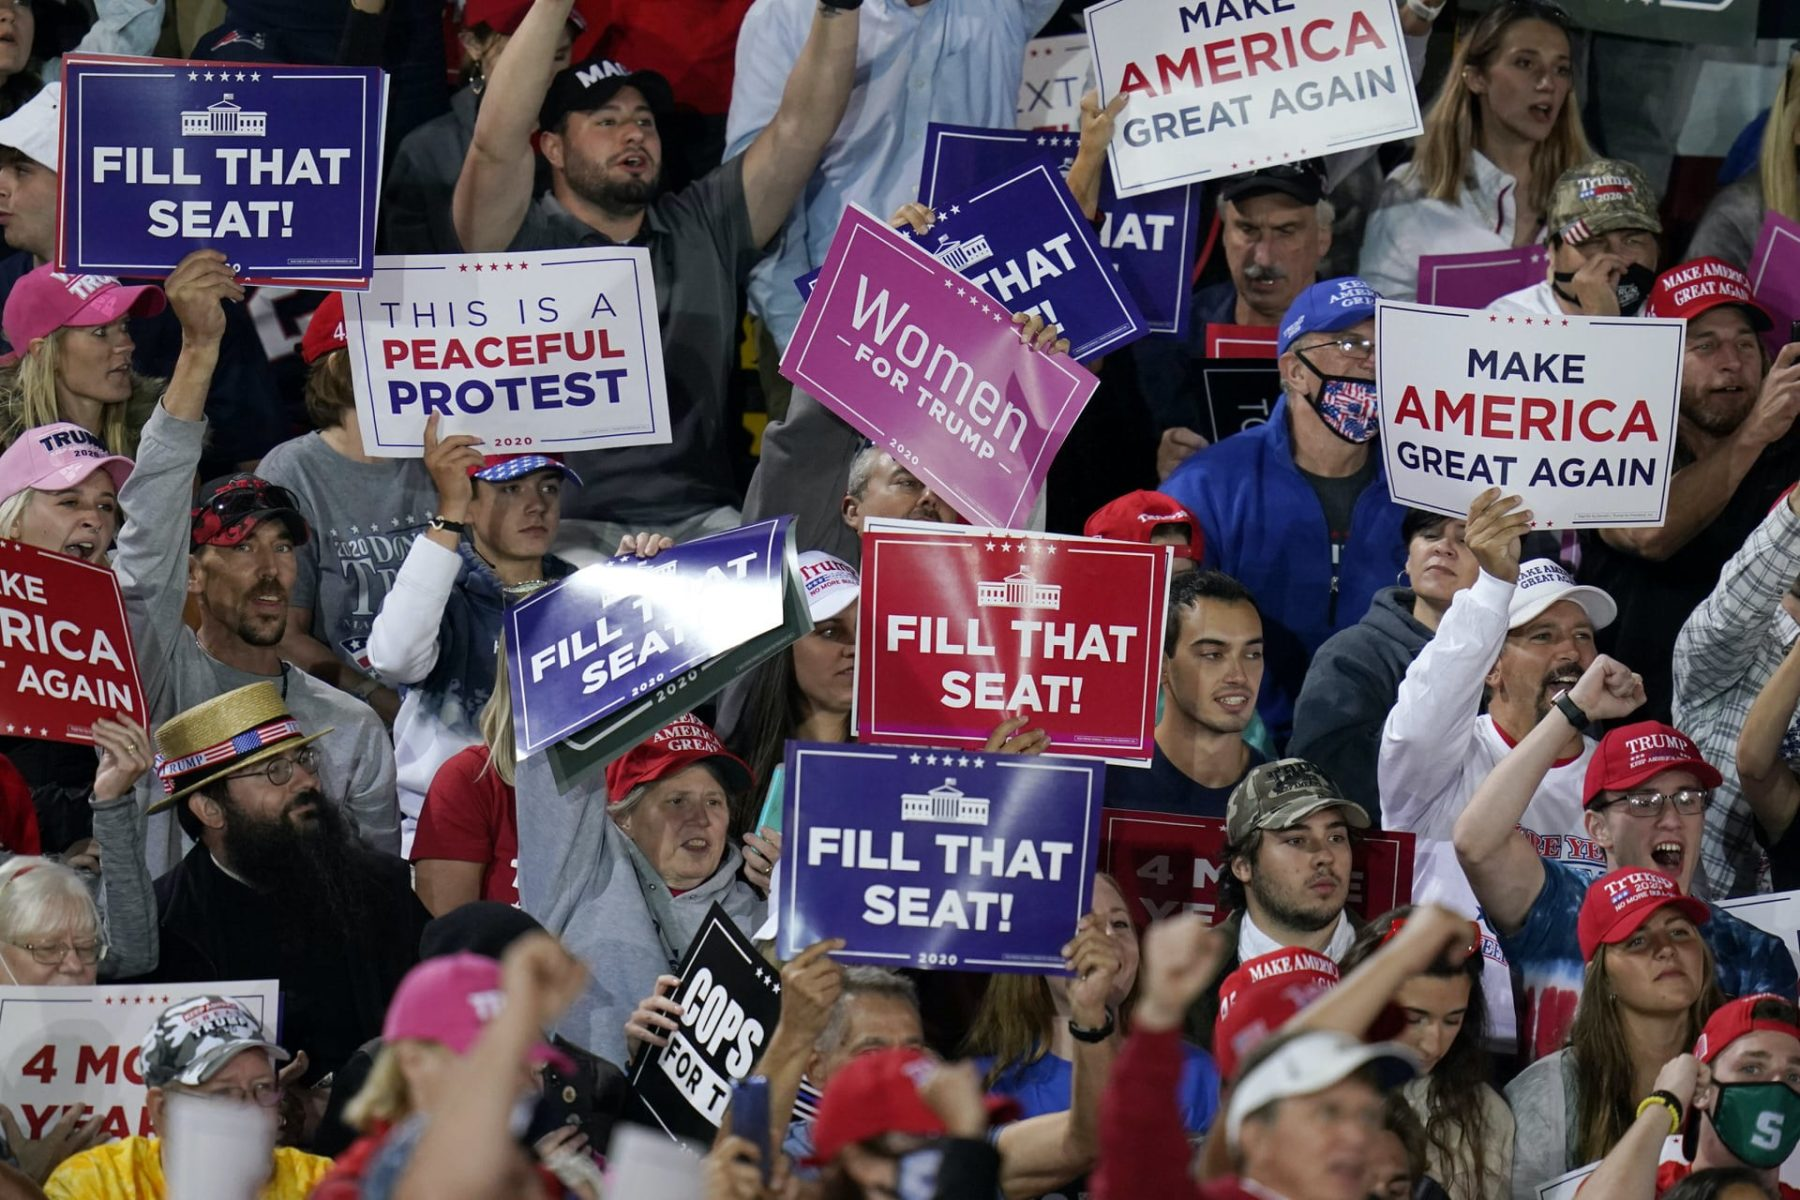 Supporters of President Donald Trump cheer as he speaks at a campaign rally, Tuesday, Sept. 22, 2020, in Moon Township, Pennsylvania.